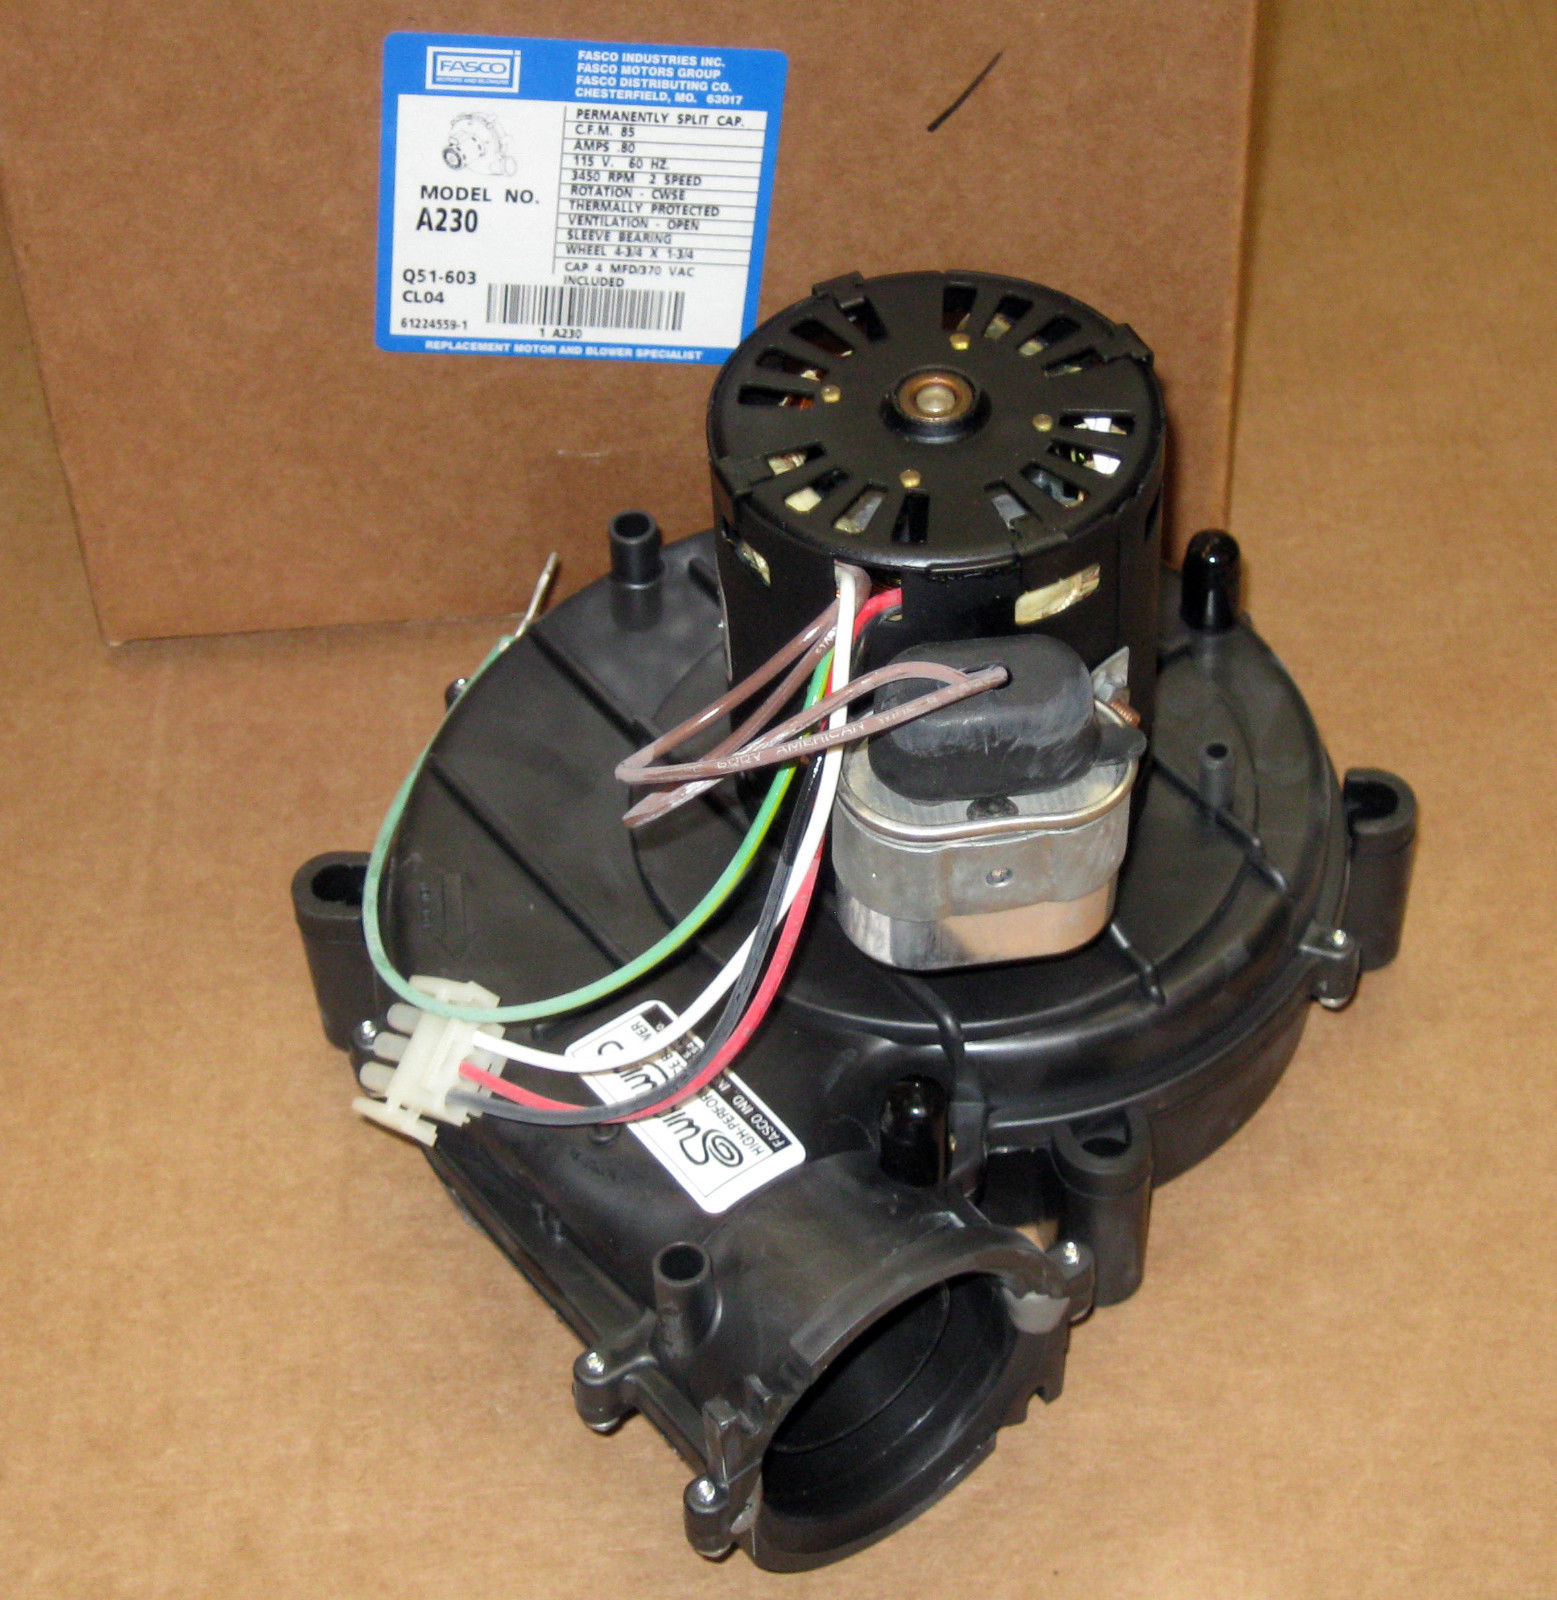 A230 fasco draft inducer motor for york 7062 5094s 17476 for York blower motor replacement